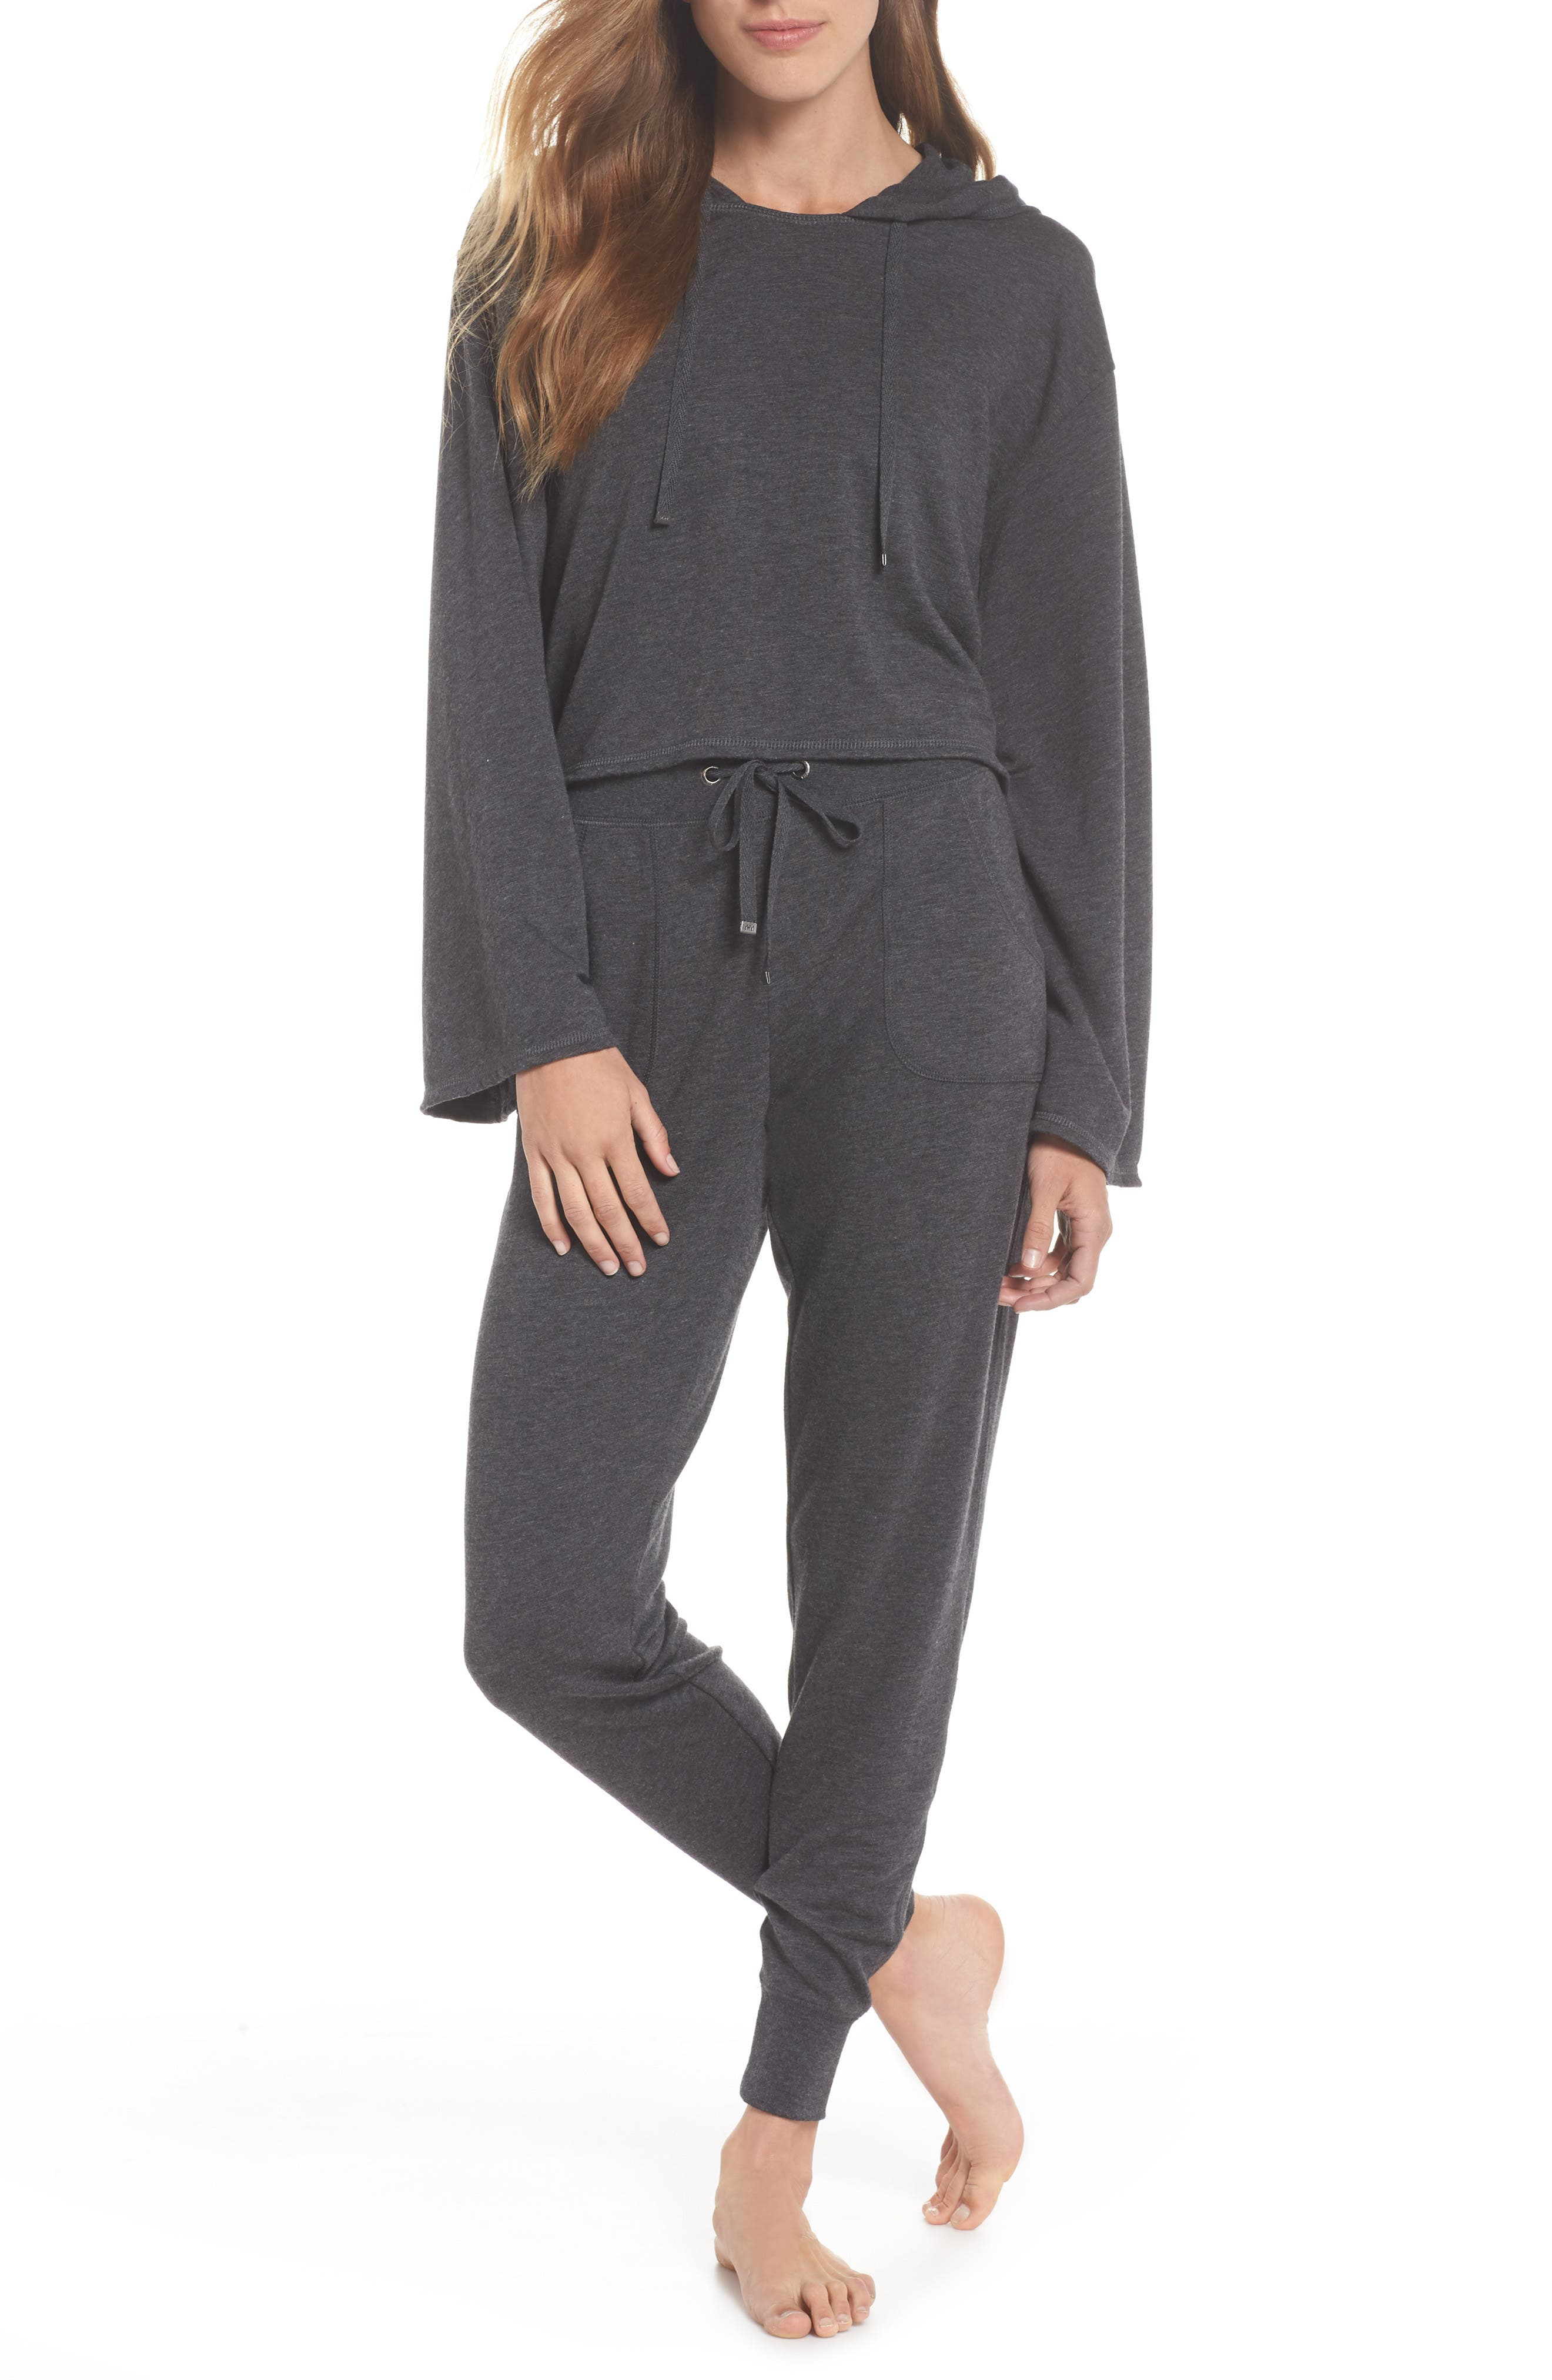 All About It Lounge Pants,                             Alternate thumbnail 36, color,